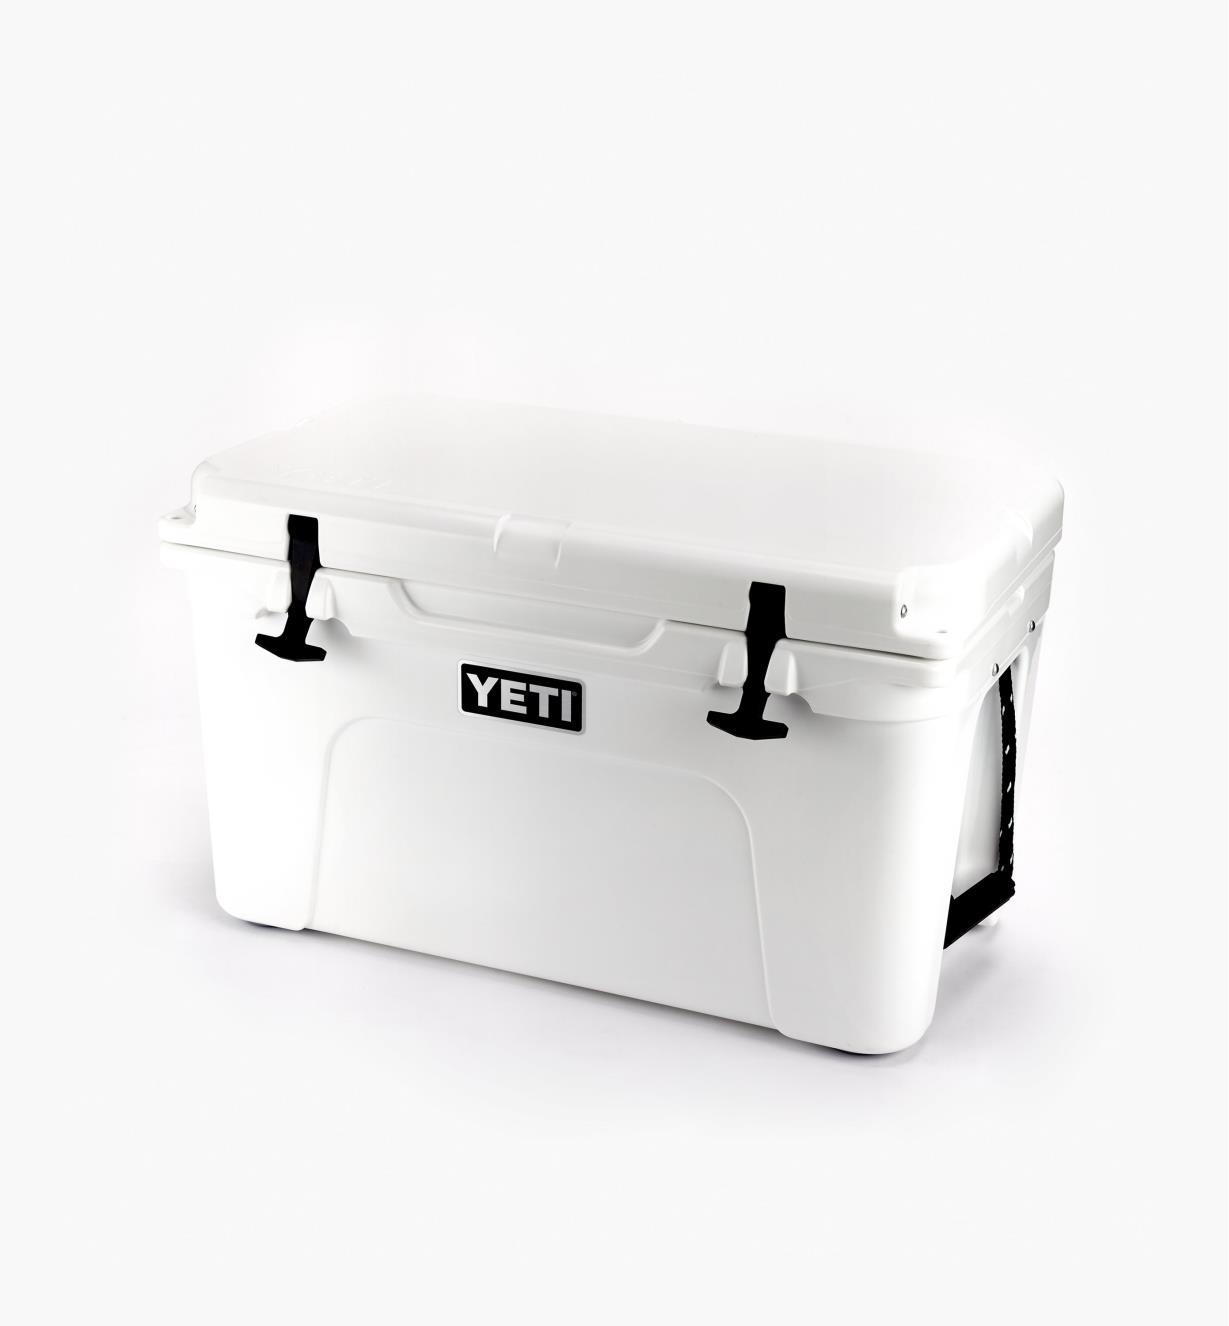 74K0011 - Yeti Tundra Hard-Sided 45 Cooler, White